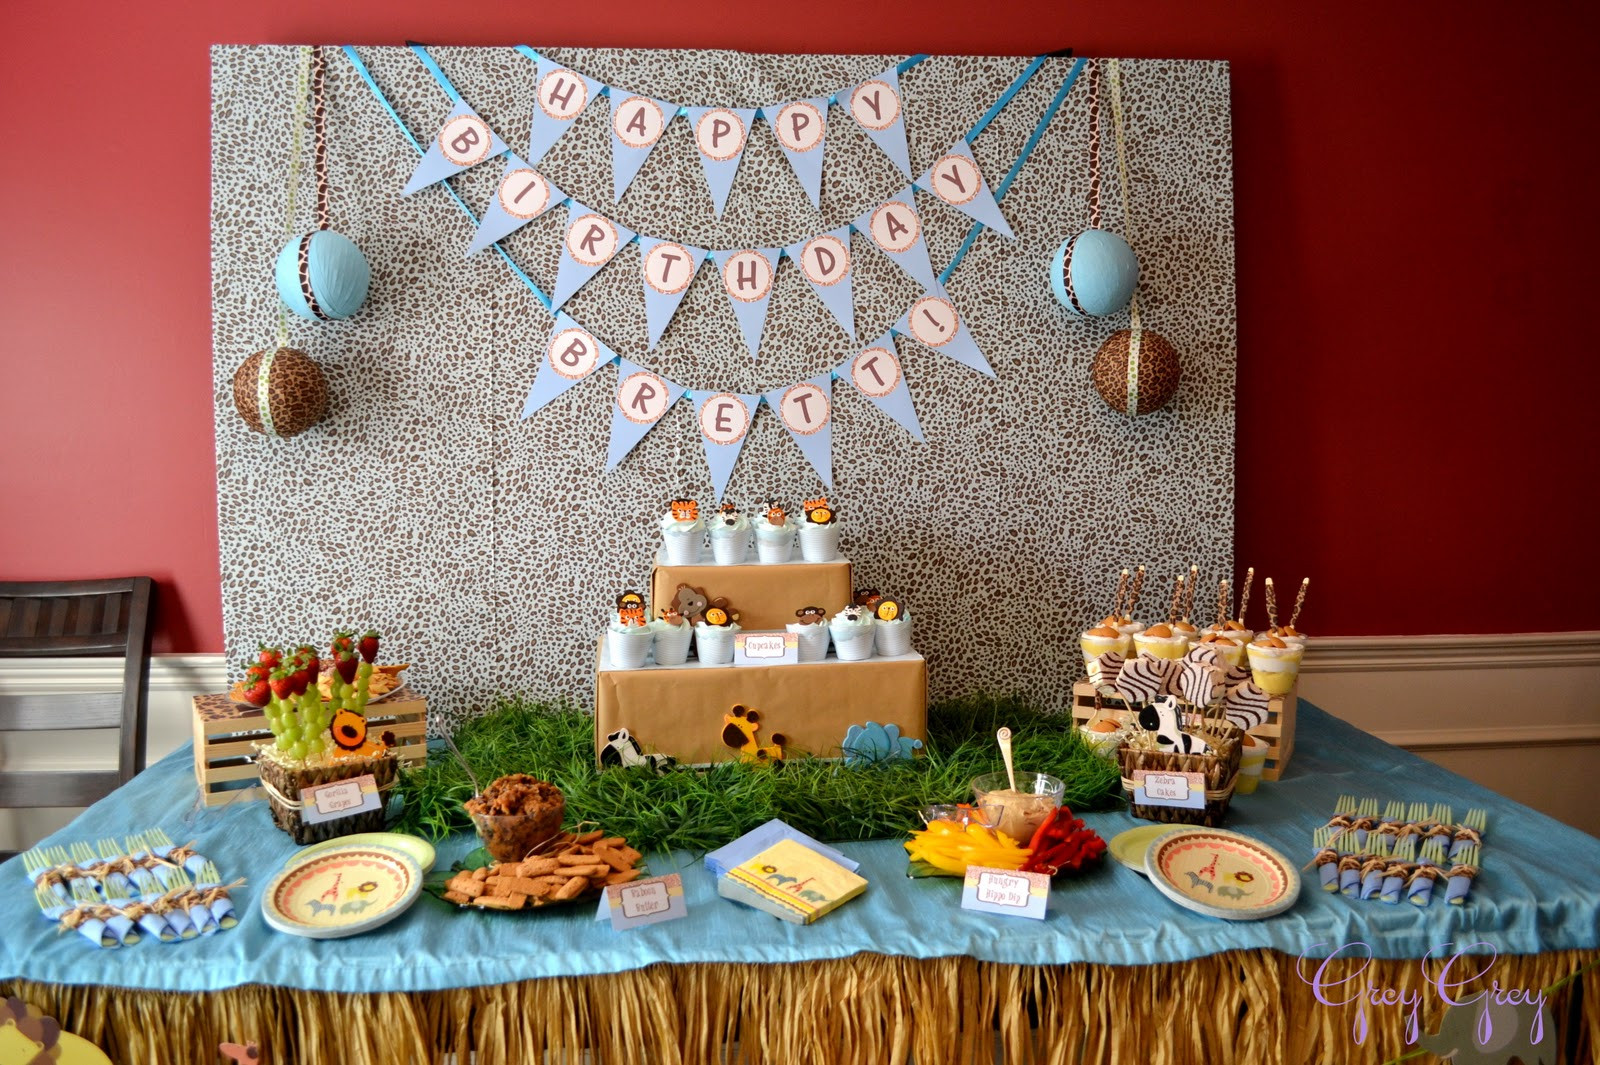 Best ideas about Safari Birthday Decorations . Save or Pin Jungle Safari Birthday Party Now.